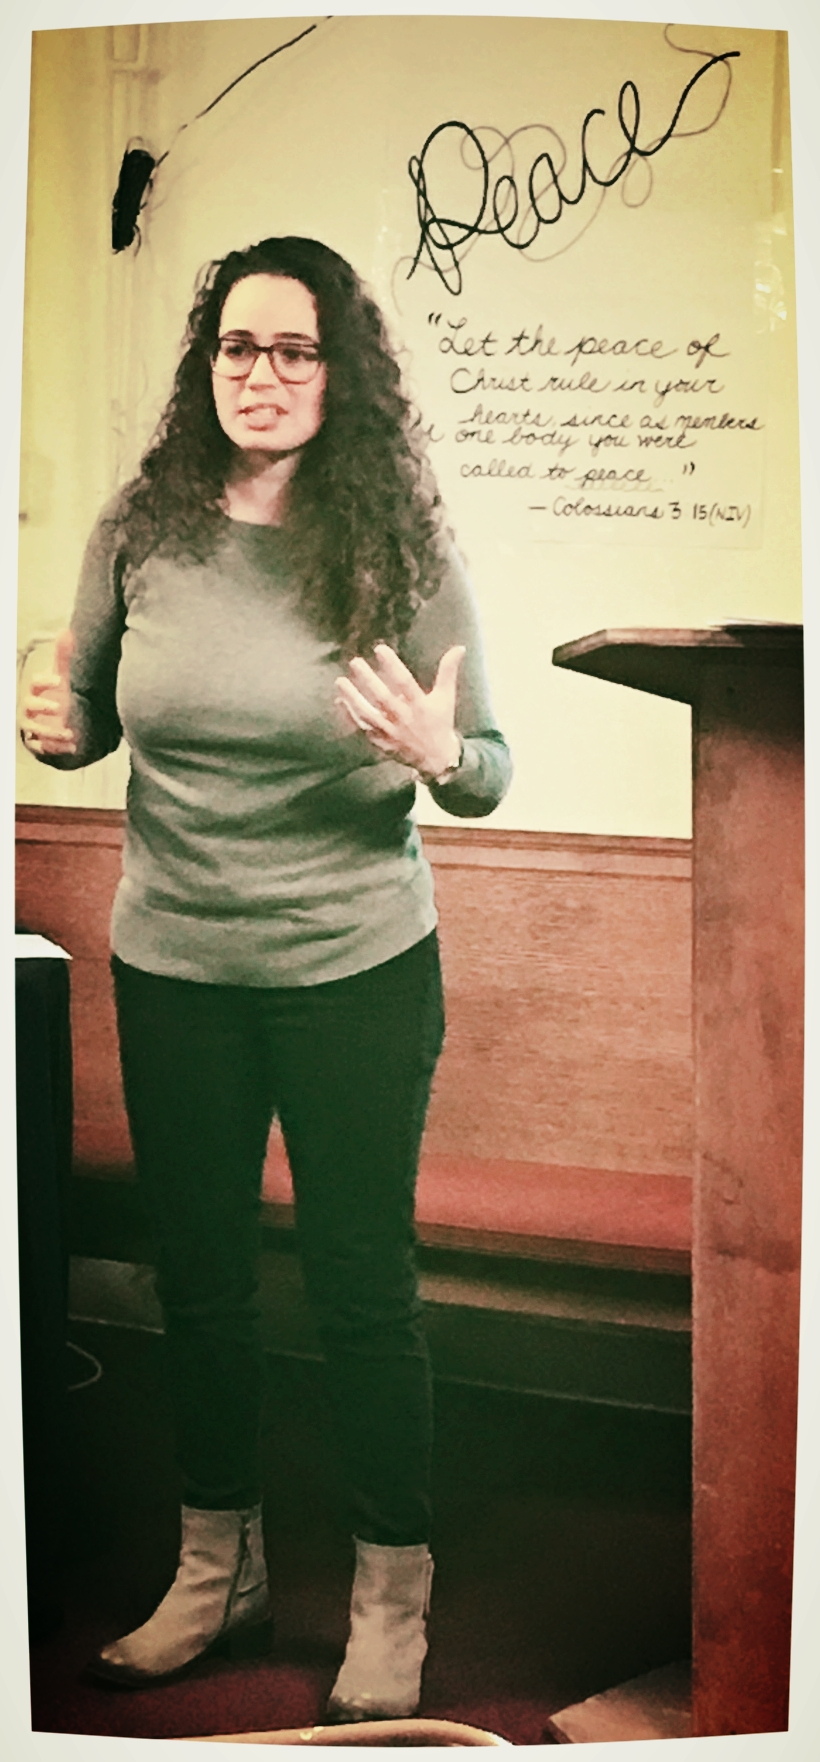 Sarah Gautier shares her journey of connecting with the Lower Roxbury community through her ministry to youth at Congregation Lion of Judah.